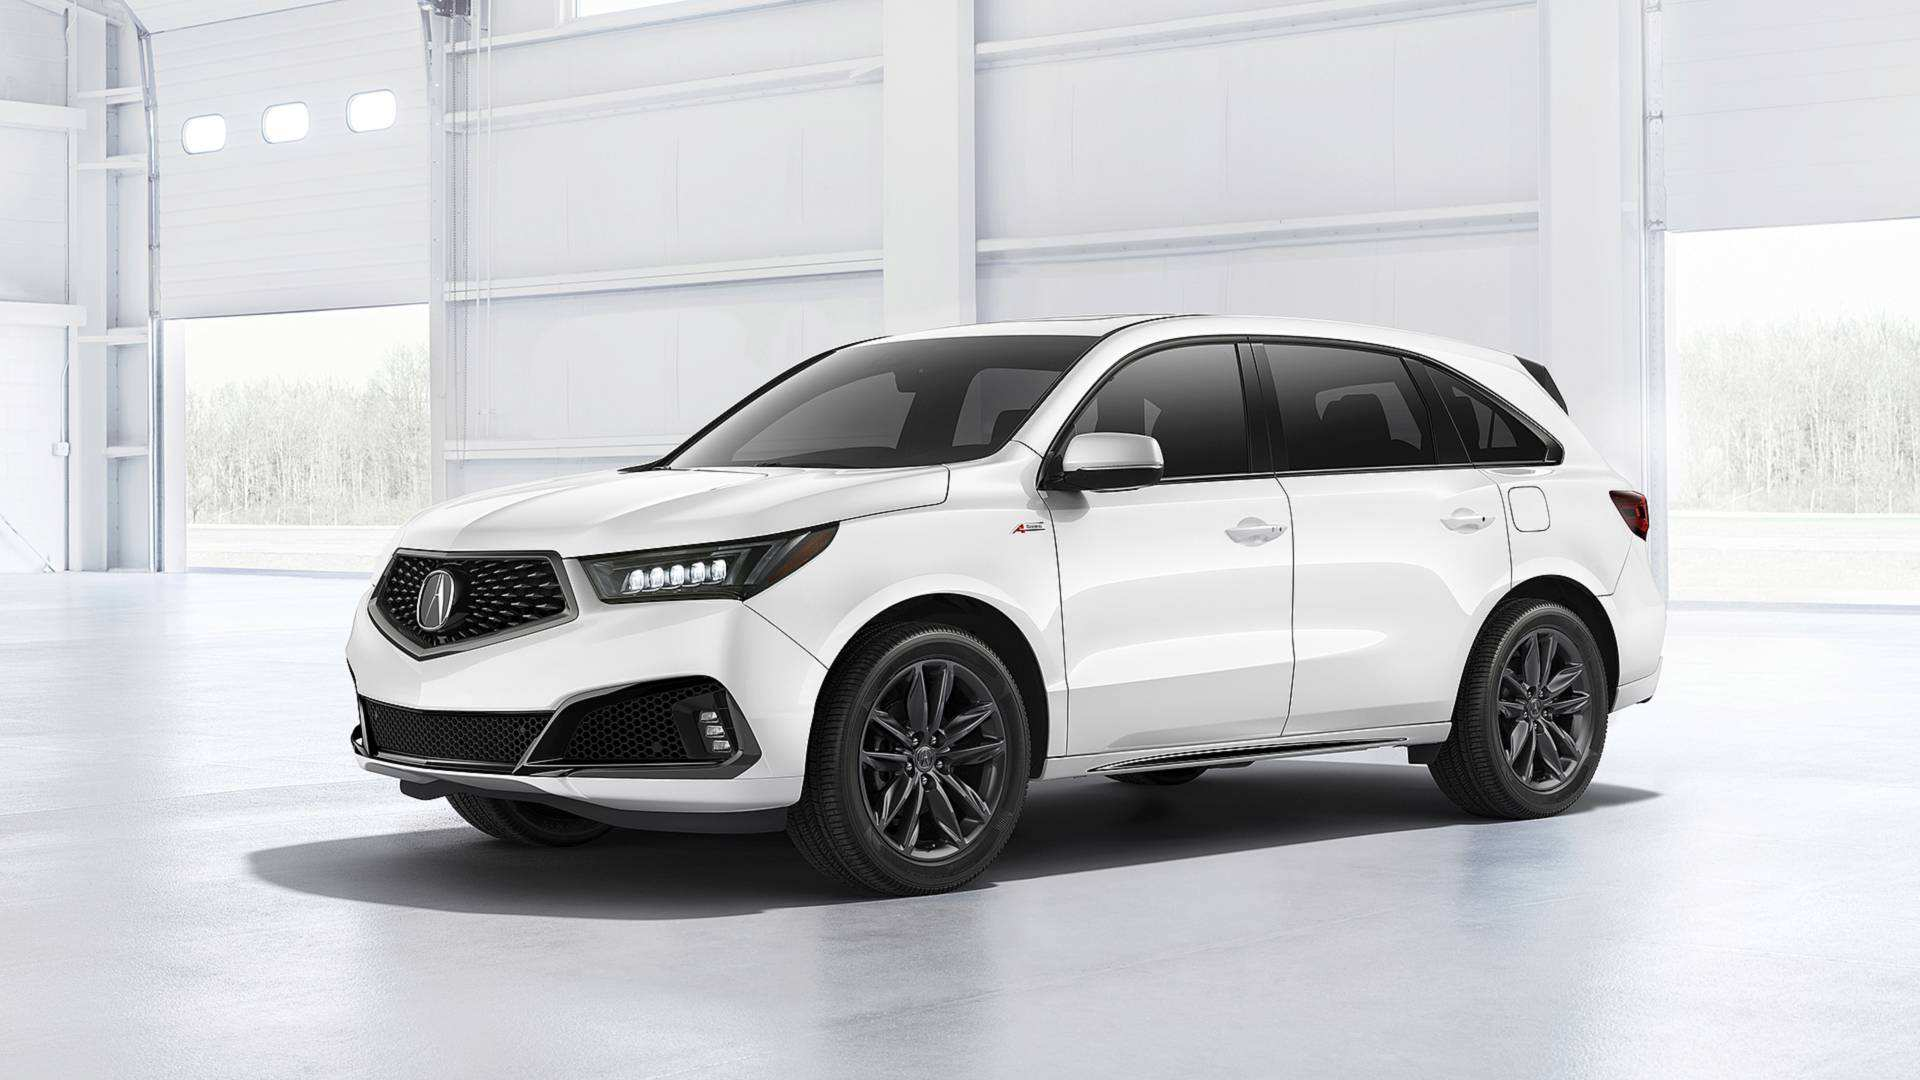 69 New Best 2019 Acura Packages First Drive Review with Best 2019 Acura Packages First Drive